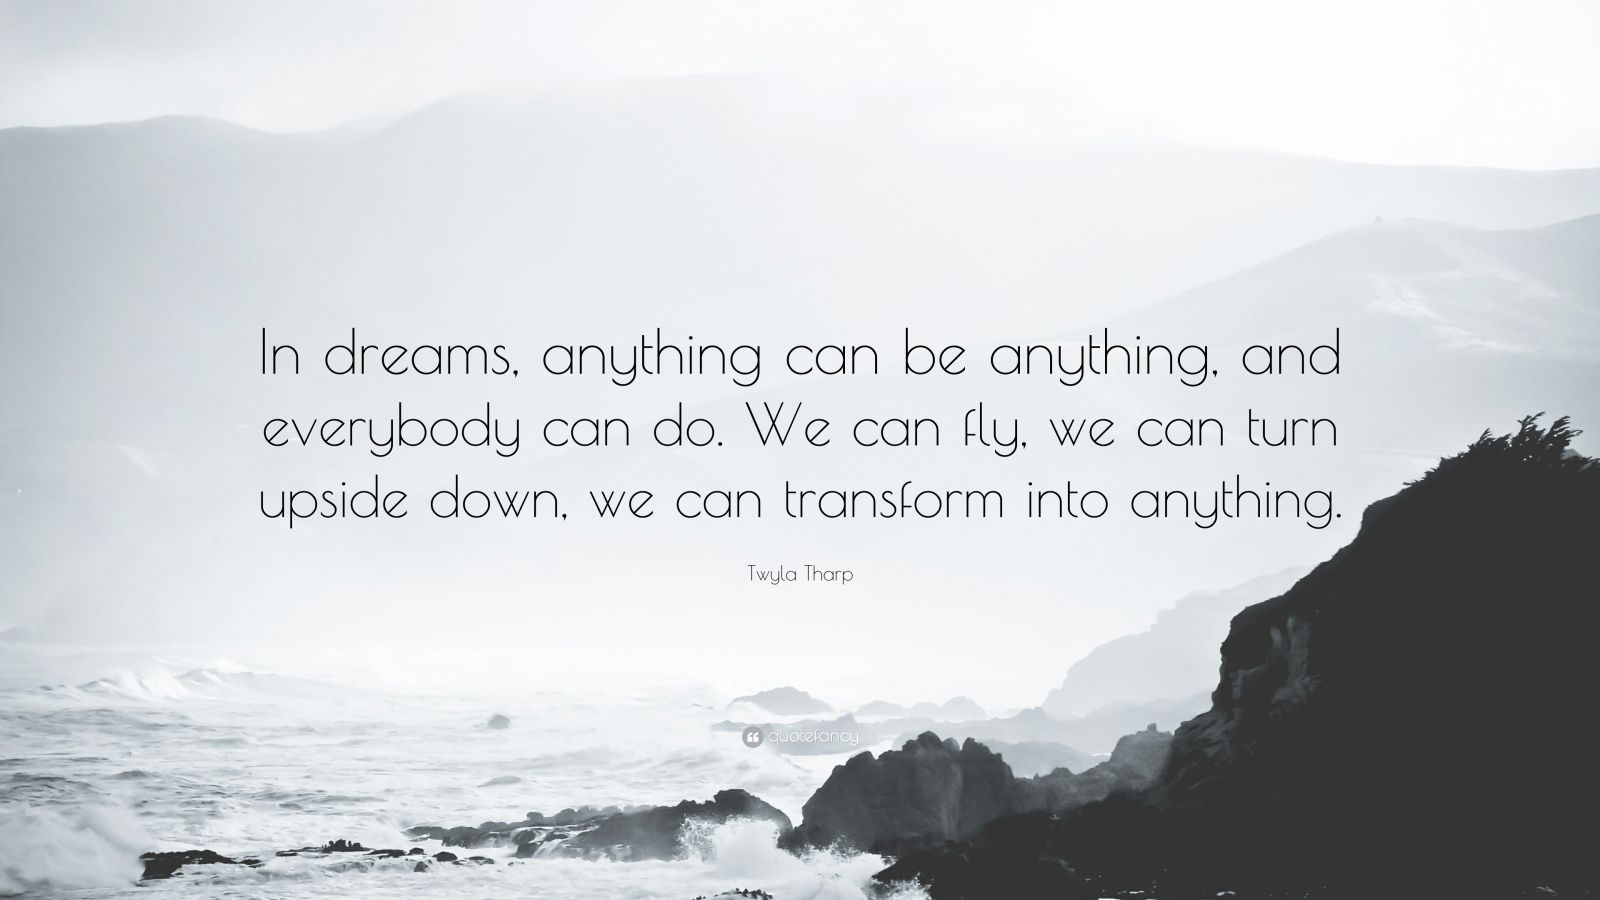 """Twyla Tharp Quote: """"In dreams, anything can be anything, and everybody can do. We can fly, we can turn upside down, we can transform into anything."""""""